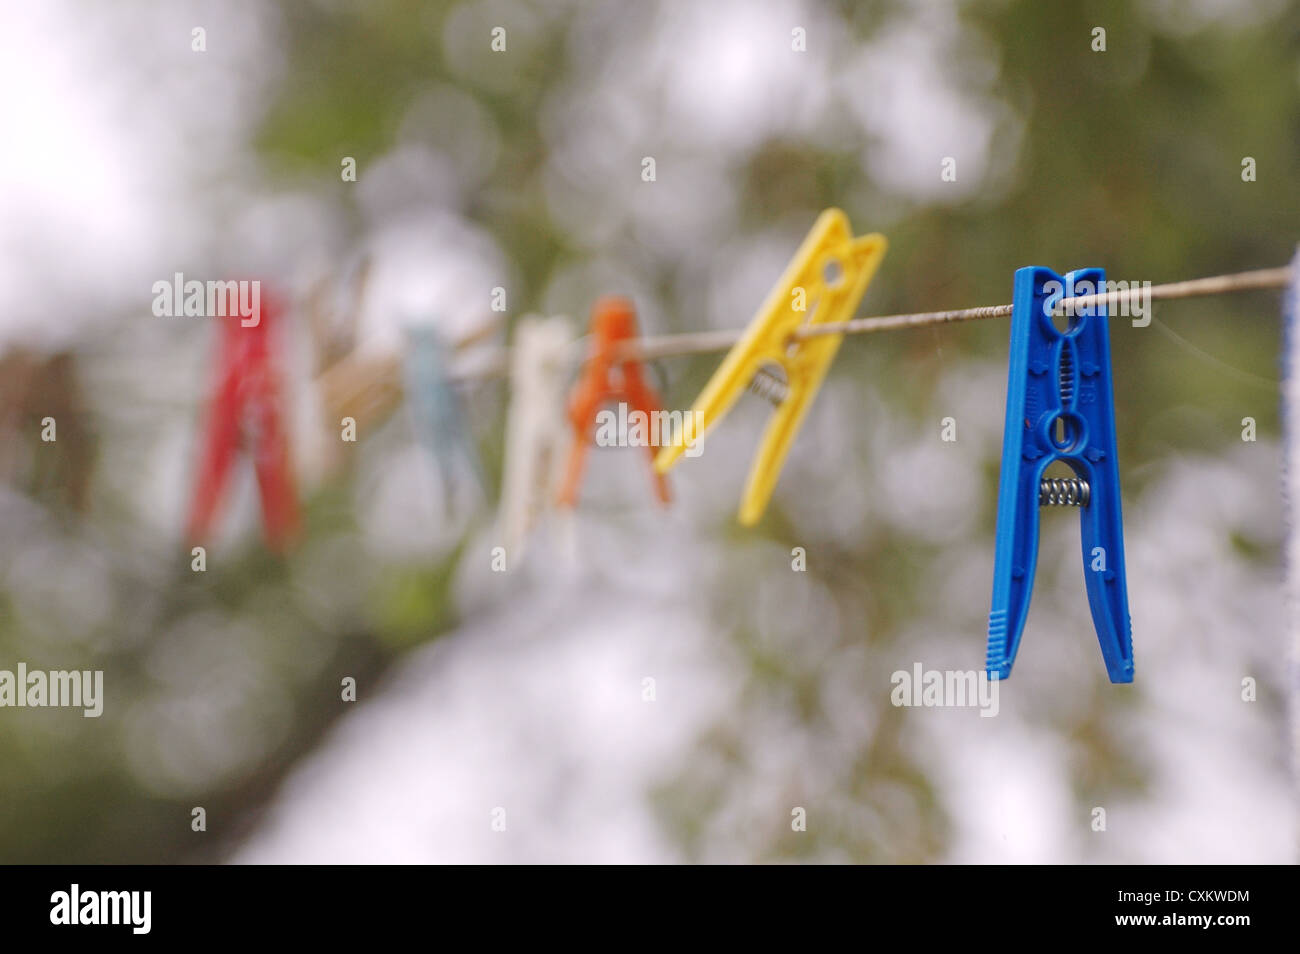 several color clothespin on clothesline - Stock Image